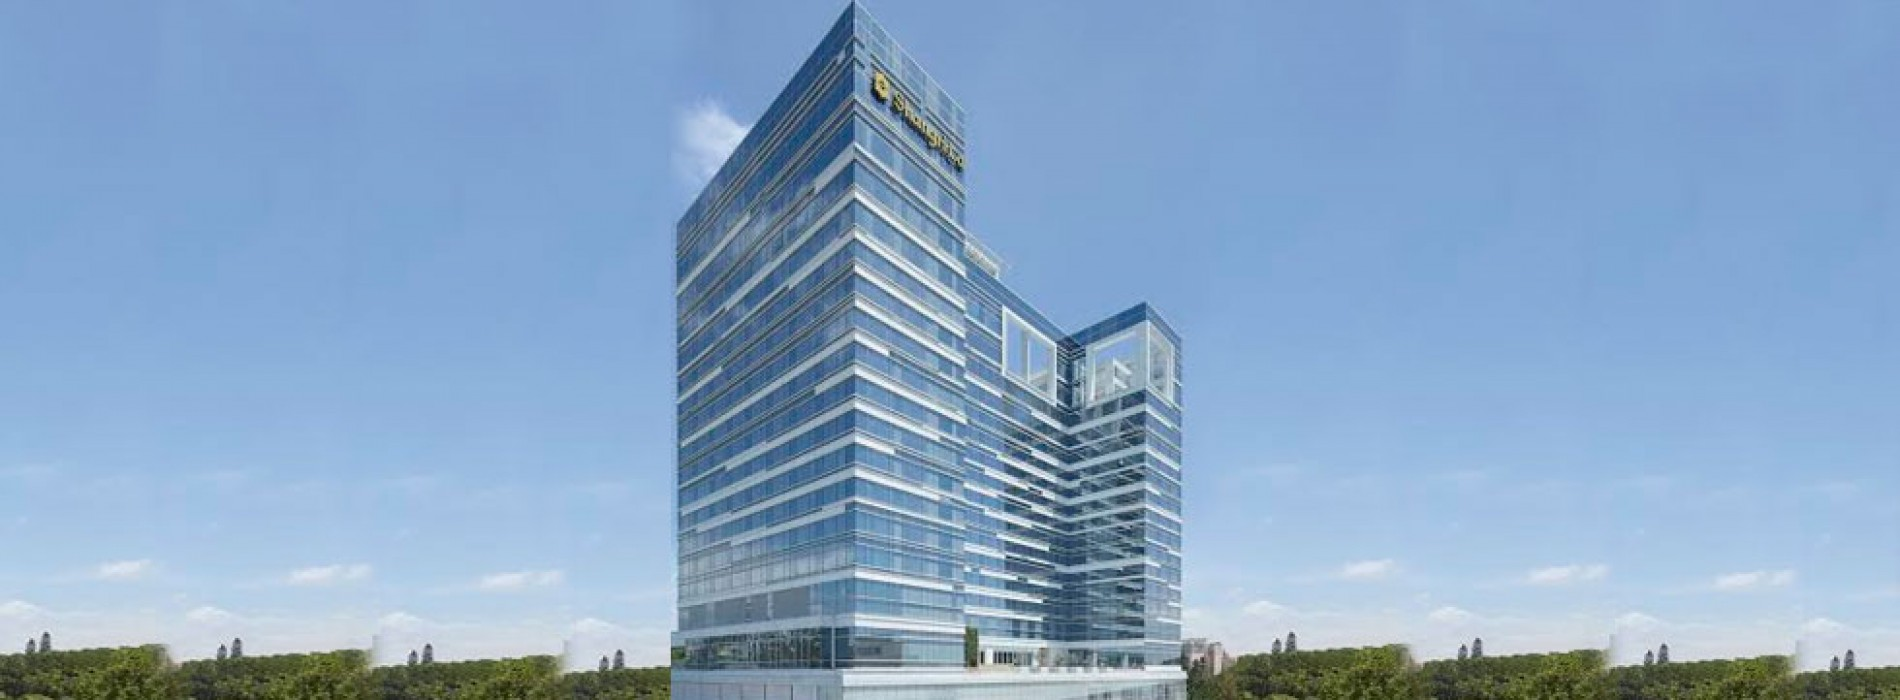 Shangri-La Hotel, Bengaluru Receives Leed India New Construction Gold Certification from IGBC